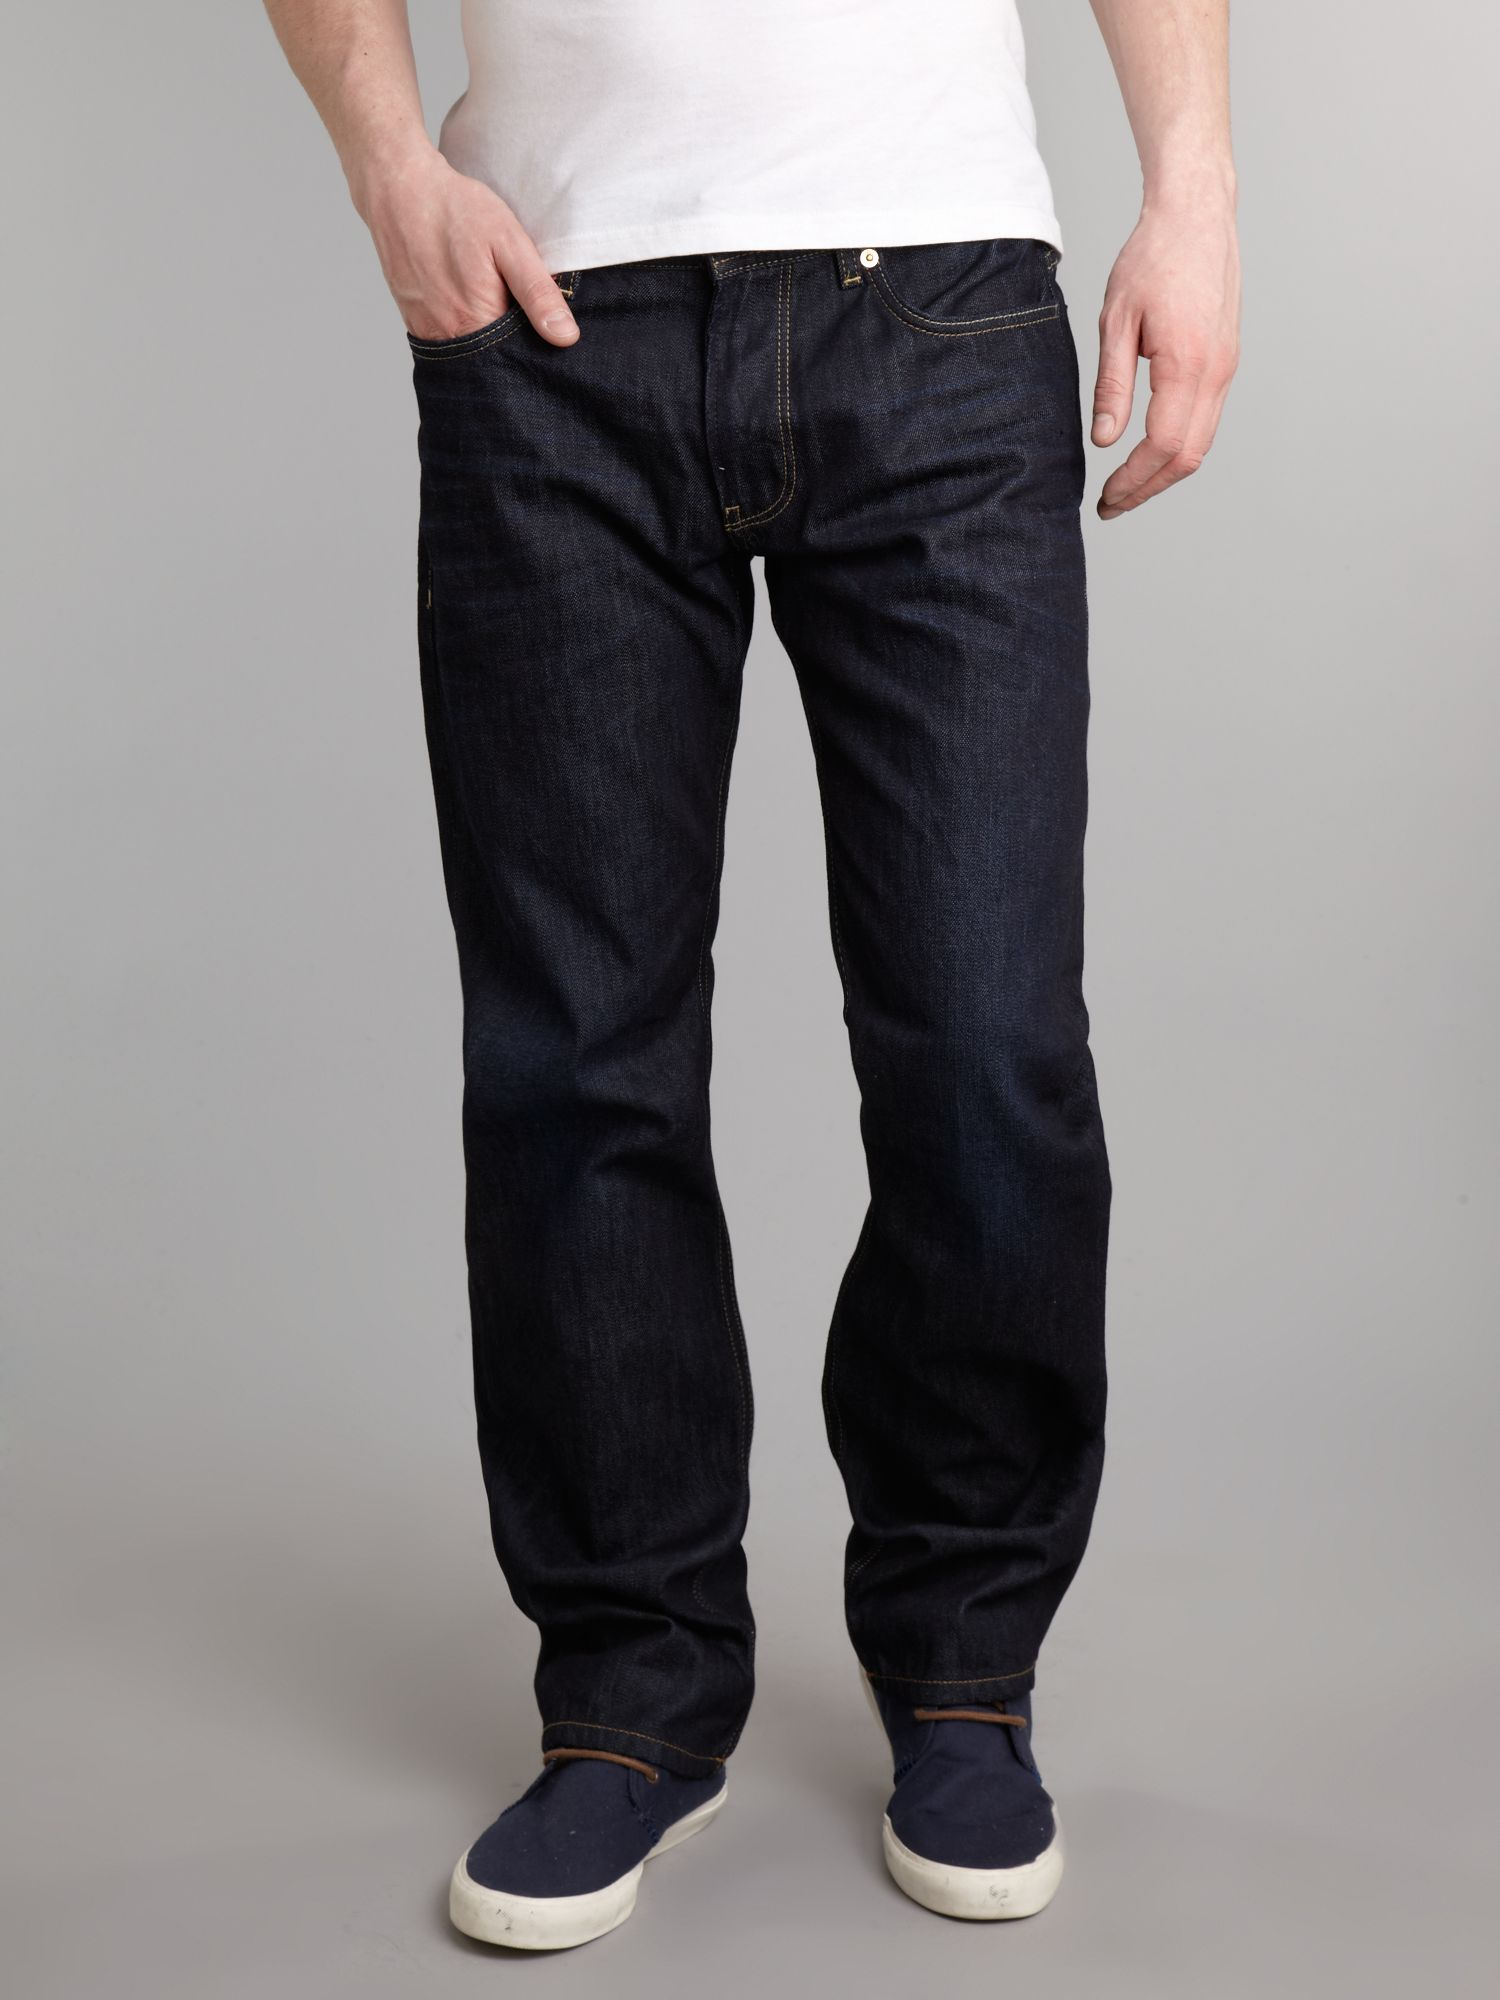 J15 regular fit jeans